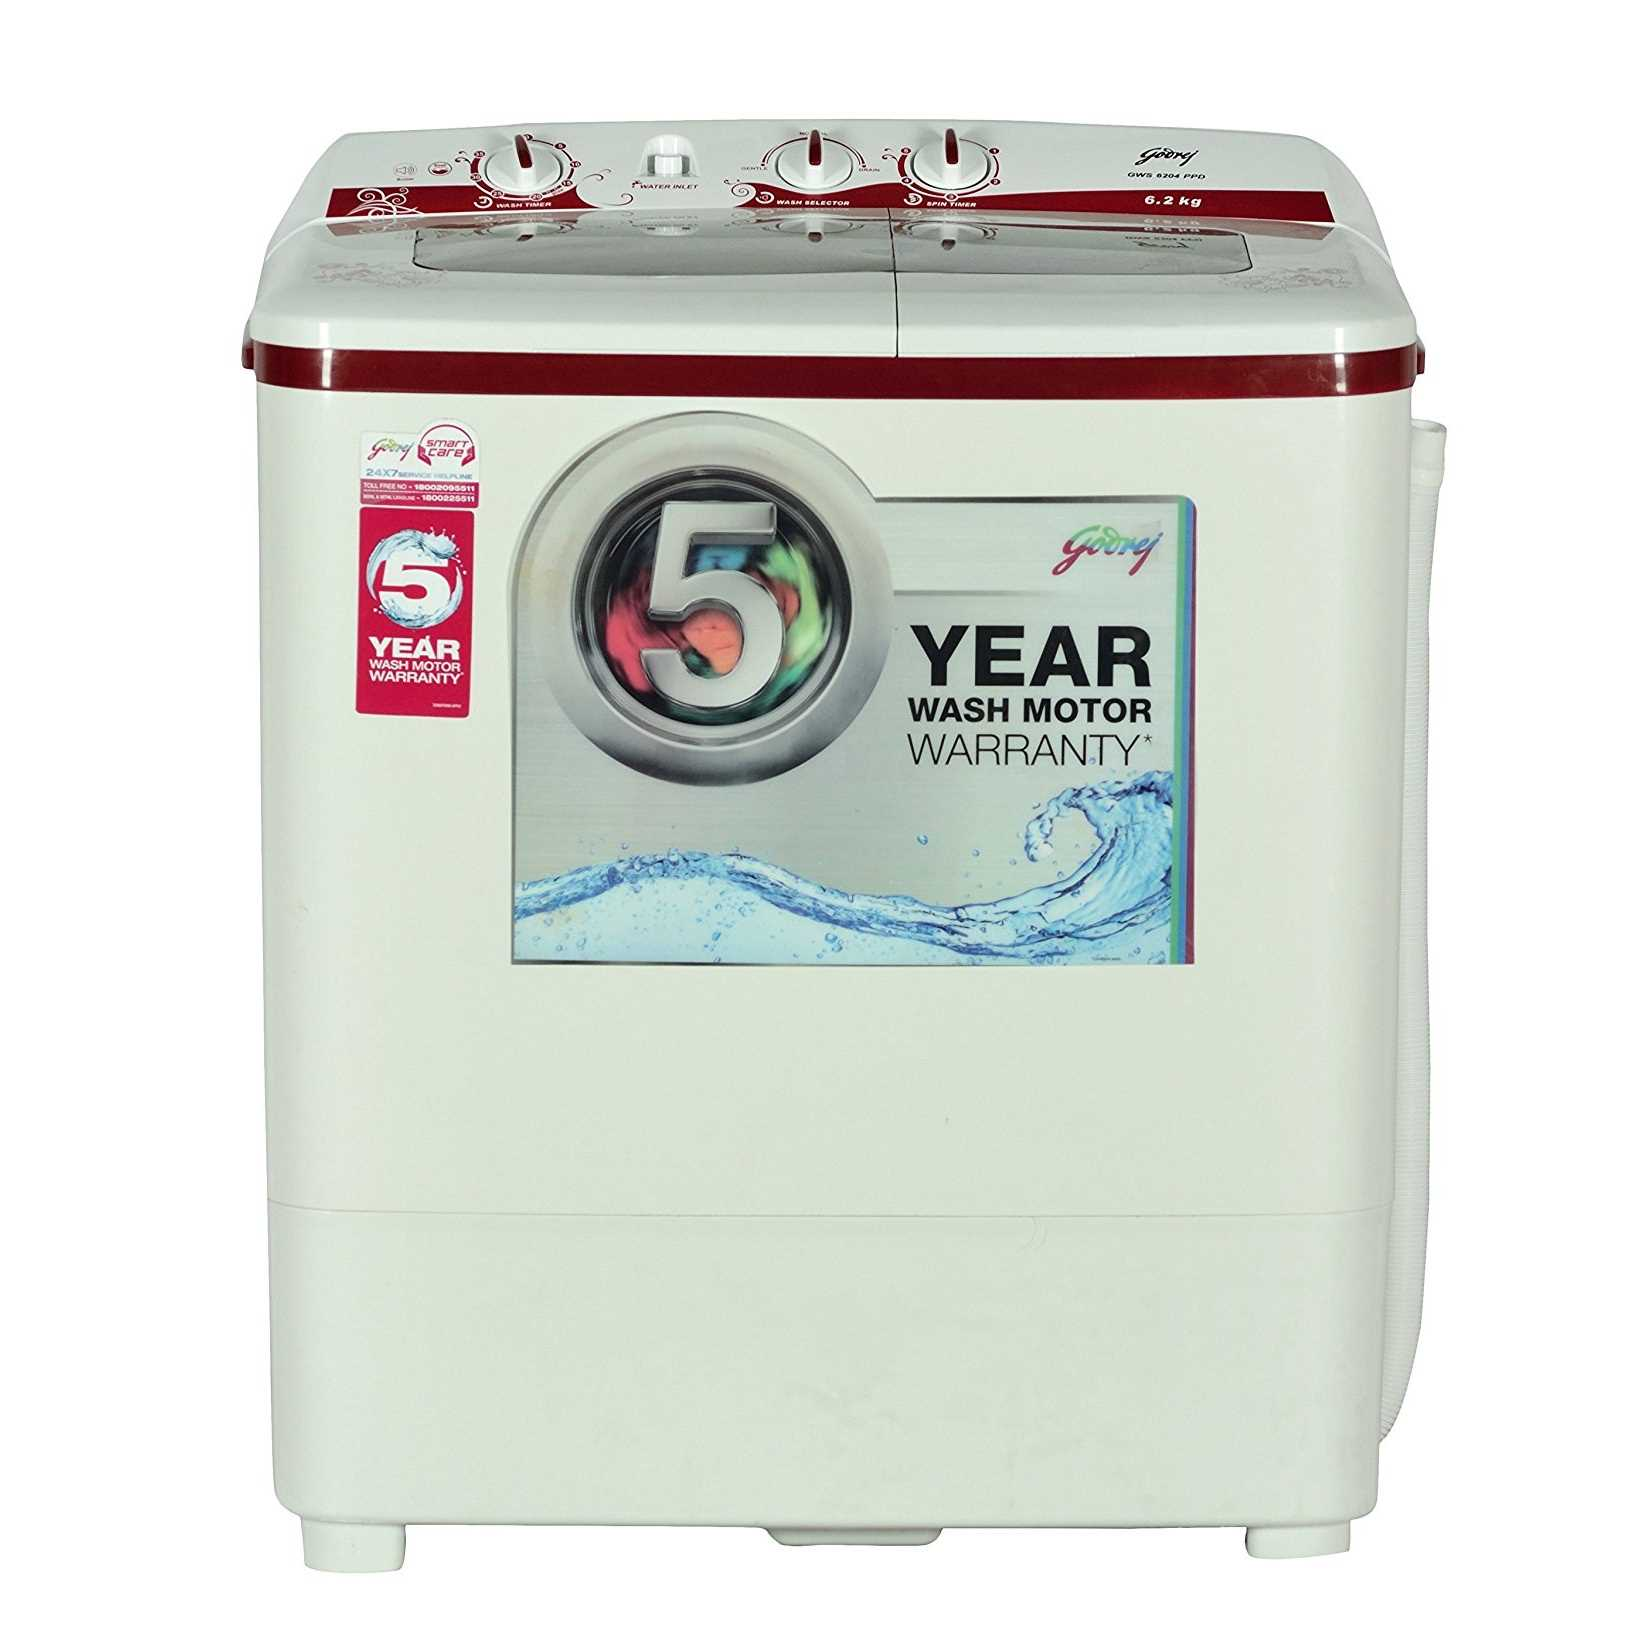 Godrej GWS 6204 PPD 6.2 Kg Semi Automatic Top Loading Washing Machine